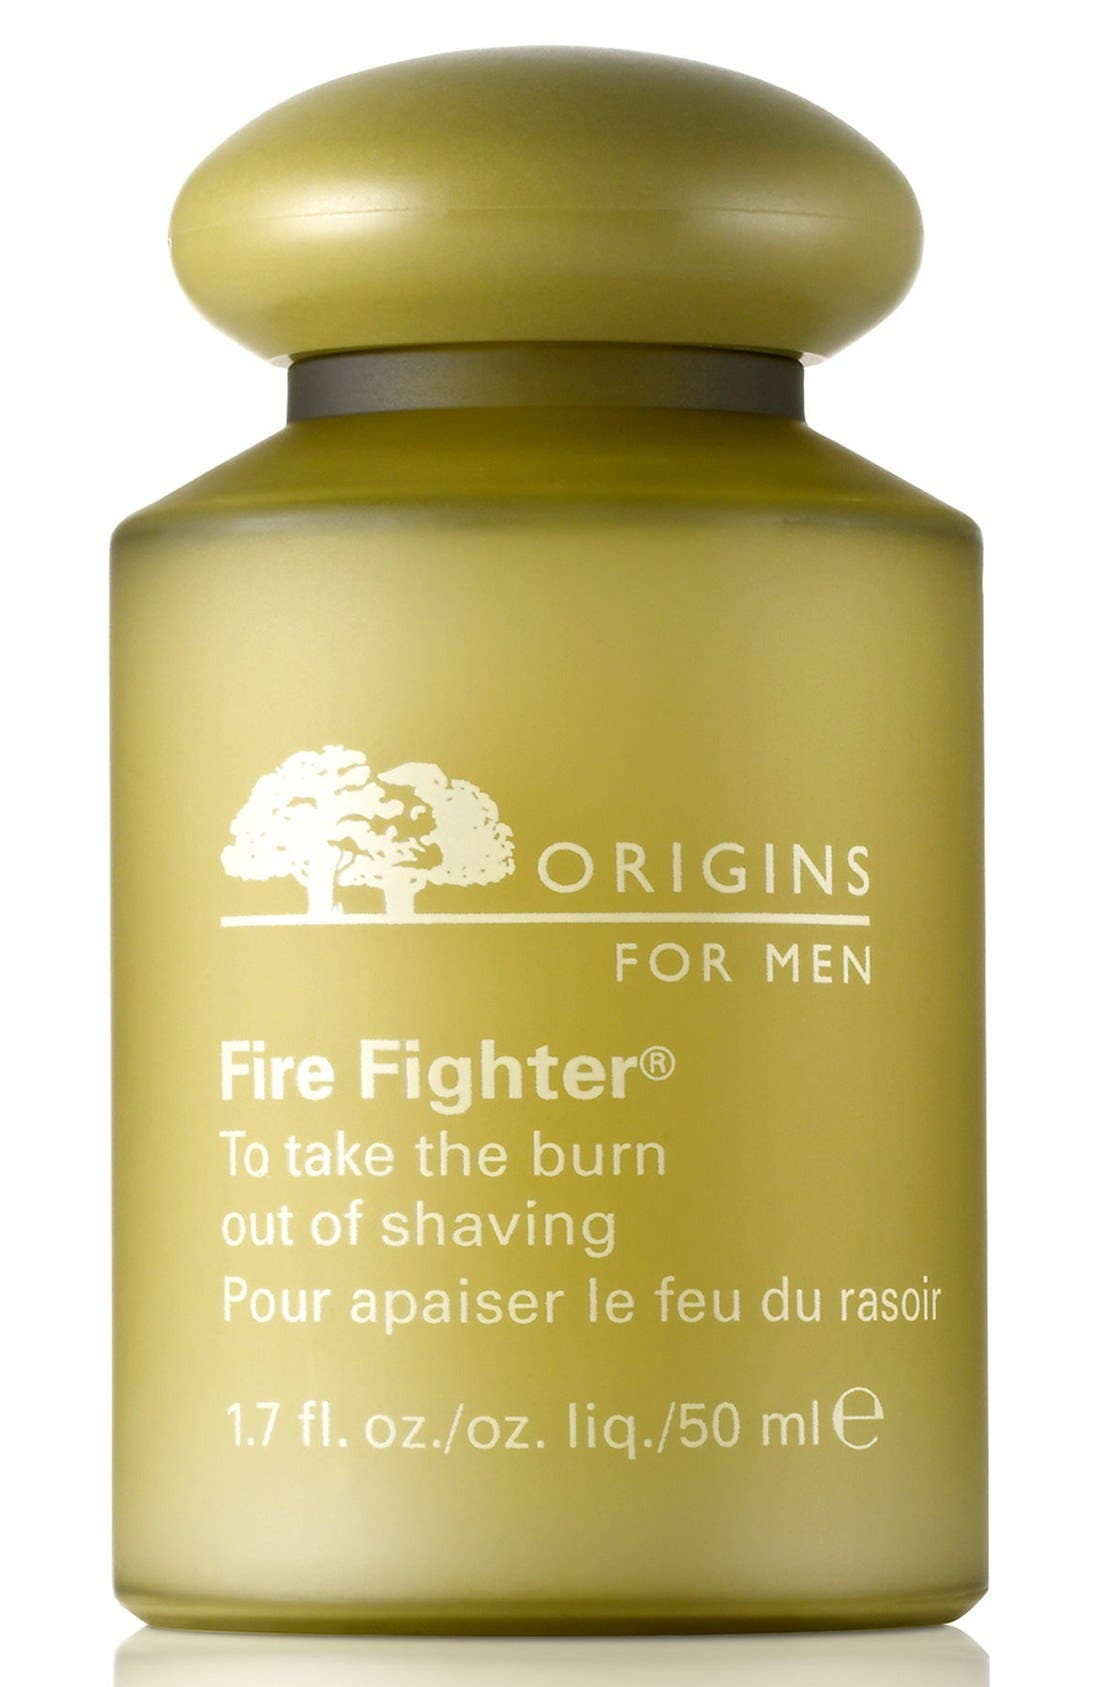 Origins Fire Fighter® to Take the Burn Out of Shaving